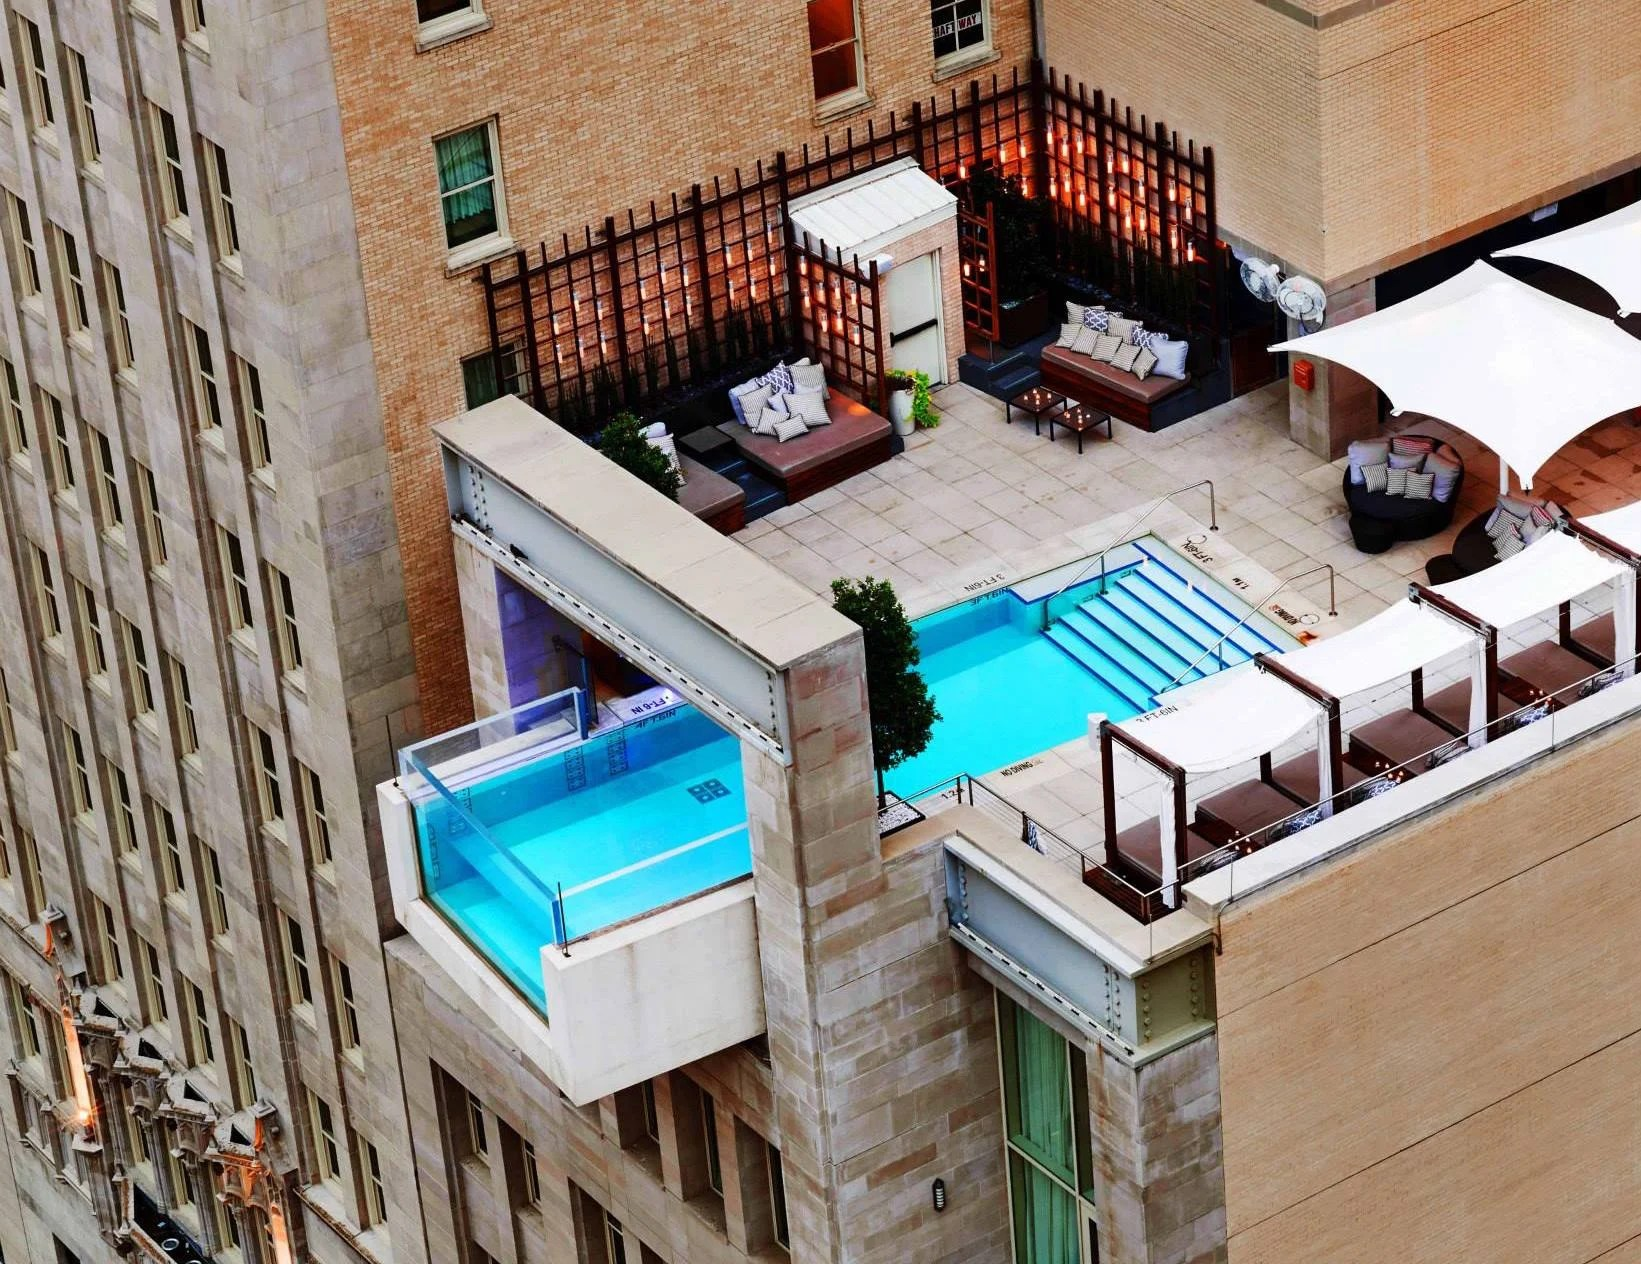 Infinity pools hotel Backyard Image Courtesy Of The Joule The Points Guy 12 Of The Most Beautiful Infinity Pools From Around The World